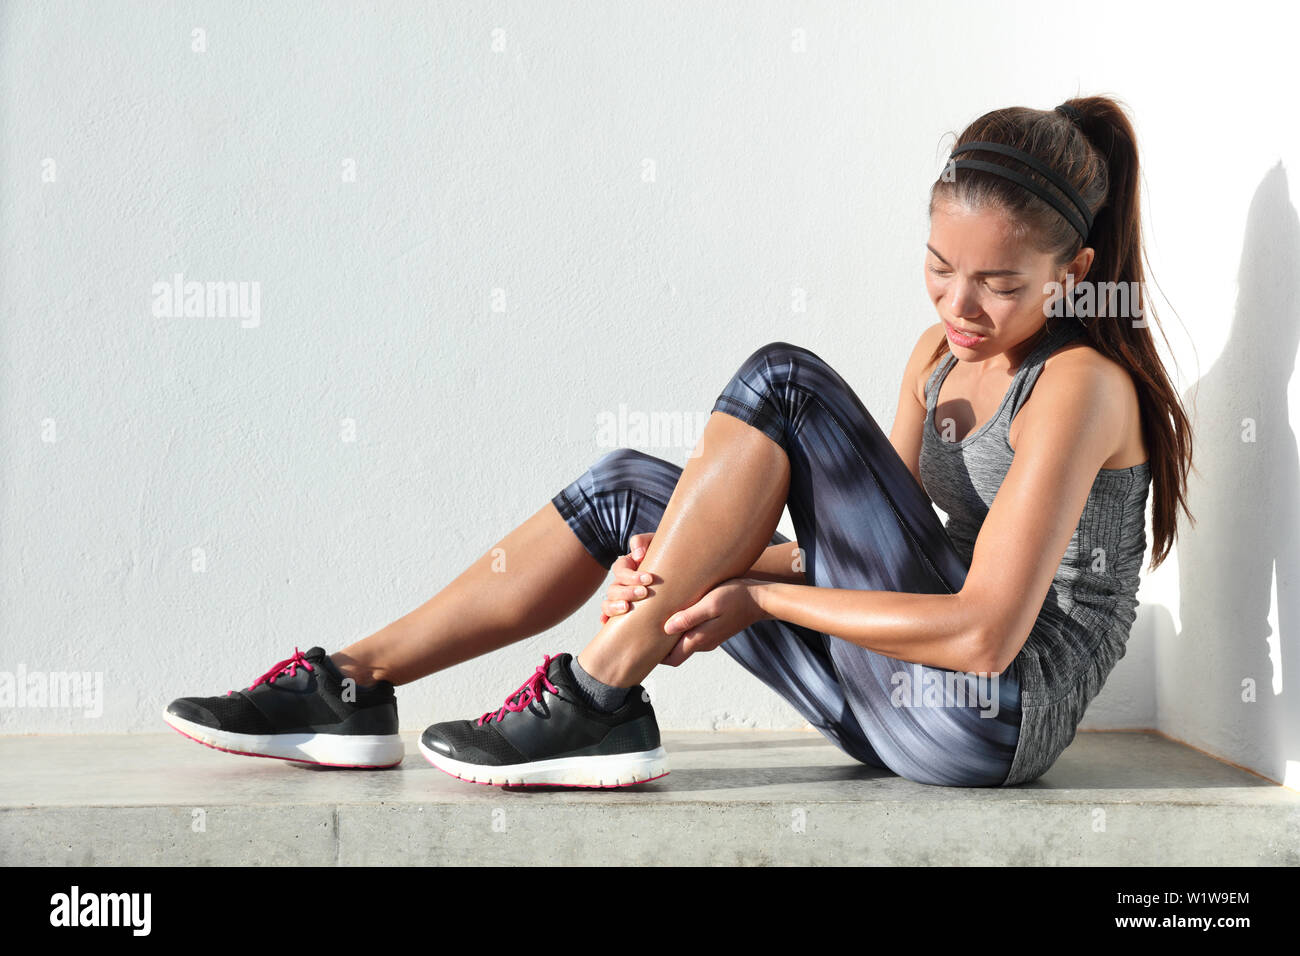 Running injury leg accident- sport woman runner hurting holding painful sprained ankle in pain. Female athlete with joint or muscle soreness and problem feeling ache in her lower body. - Stock Image